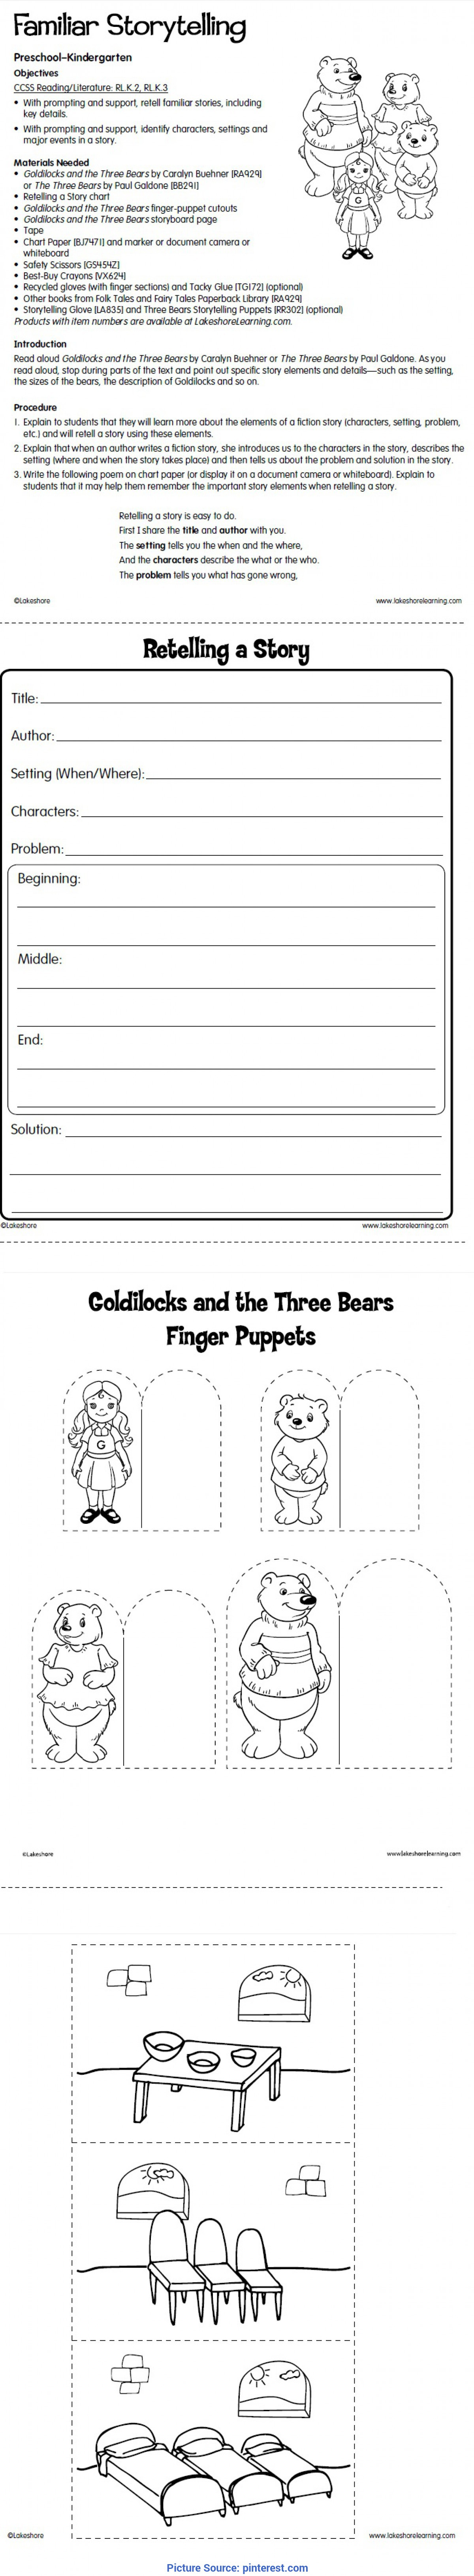 Writing Lesson Plans For Preschoolers